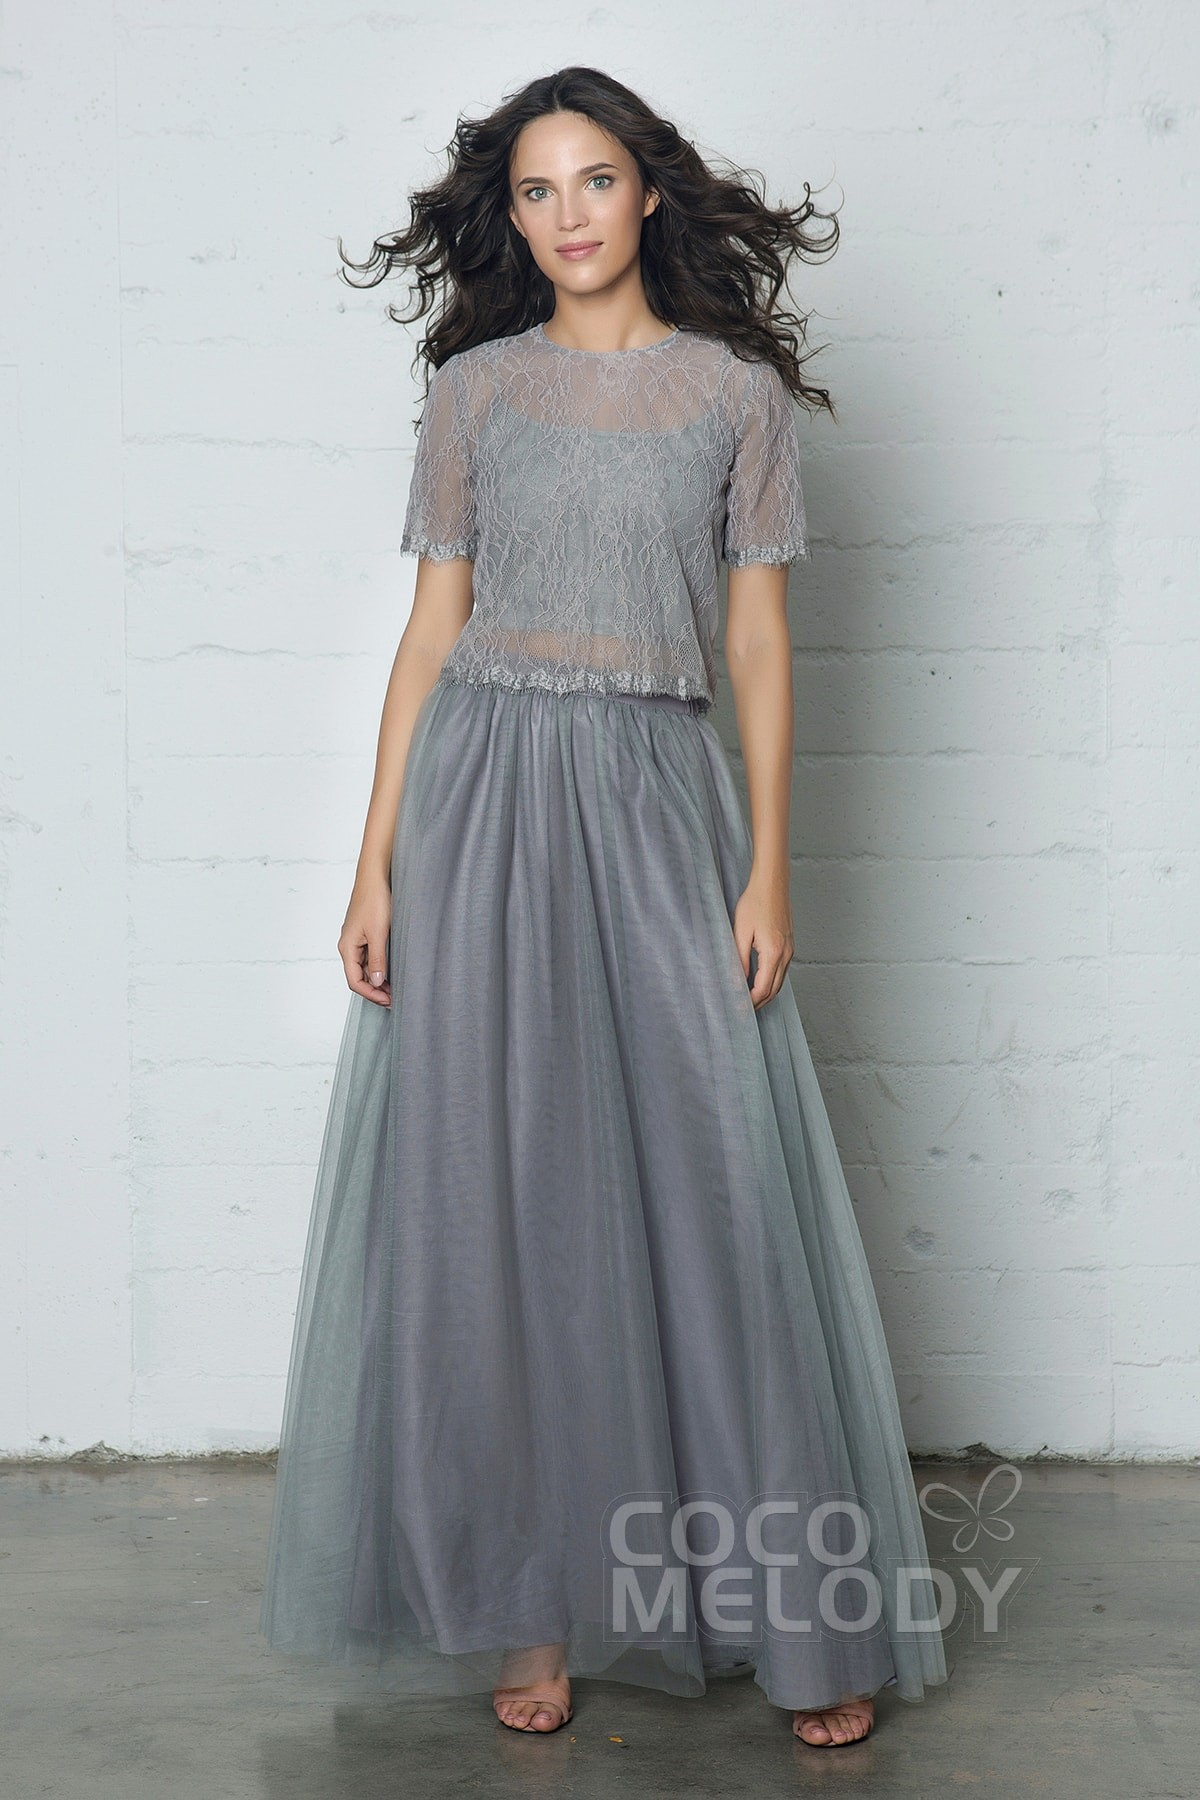 Sheath-Column Floor Length Tulle/Lace Dress PR17003 | Cocomelody